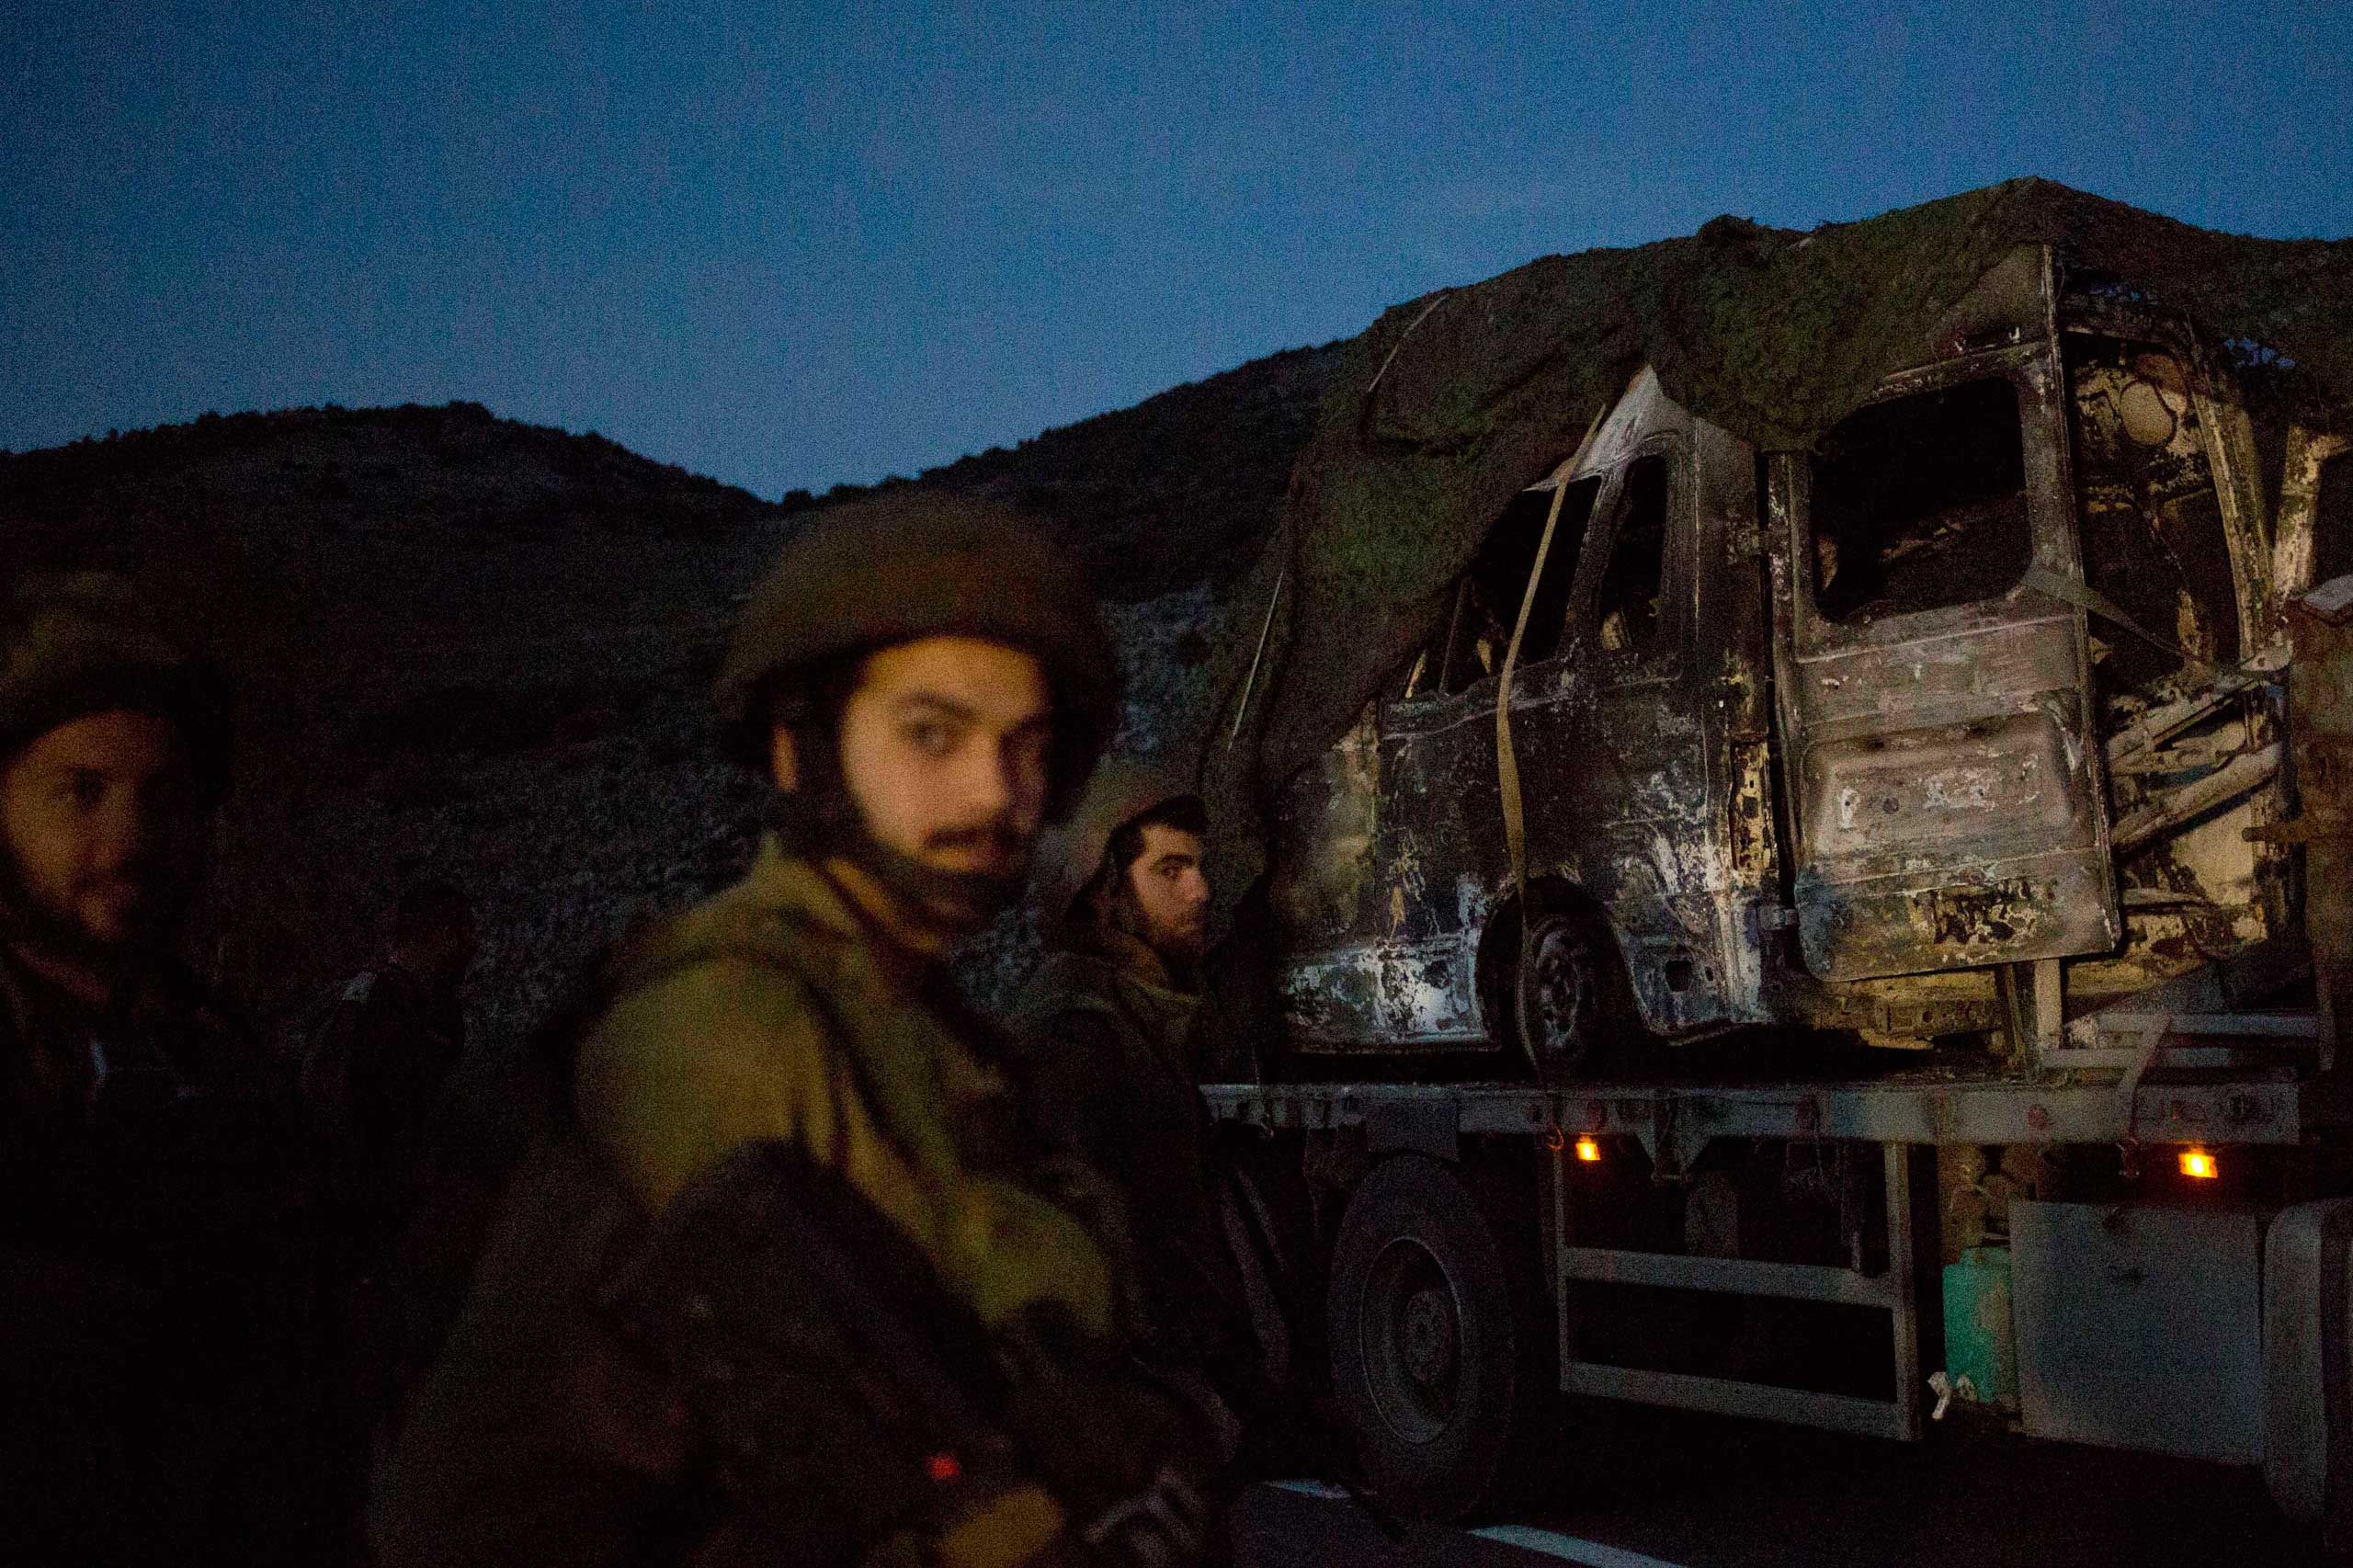 Jan. 28, 2015. Israeli soldiers watch as a truck carries the military vehicle that was hit by a missile fired by Hezbollah on the Israel-Lebanon border. The event killed two soldiers in an apparent retaliation for a deadly airstrike attributed to Israel that killed six Hezbollah fighters in Syria earlier this month.